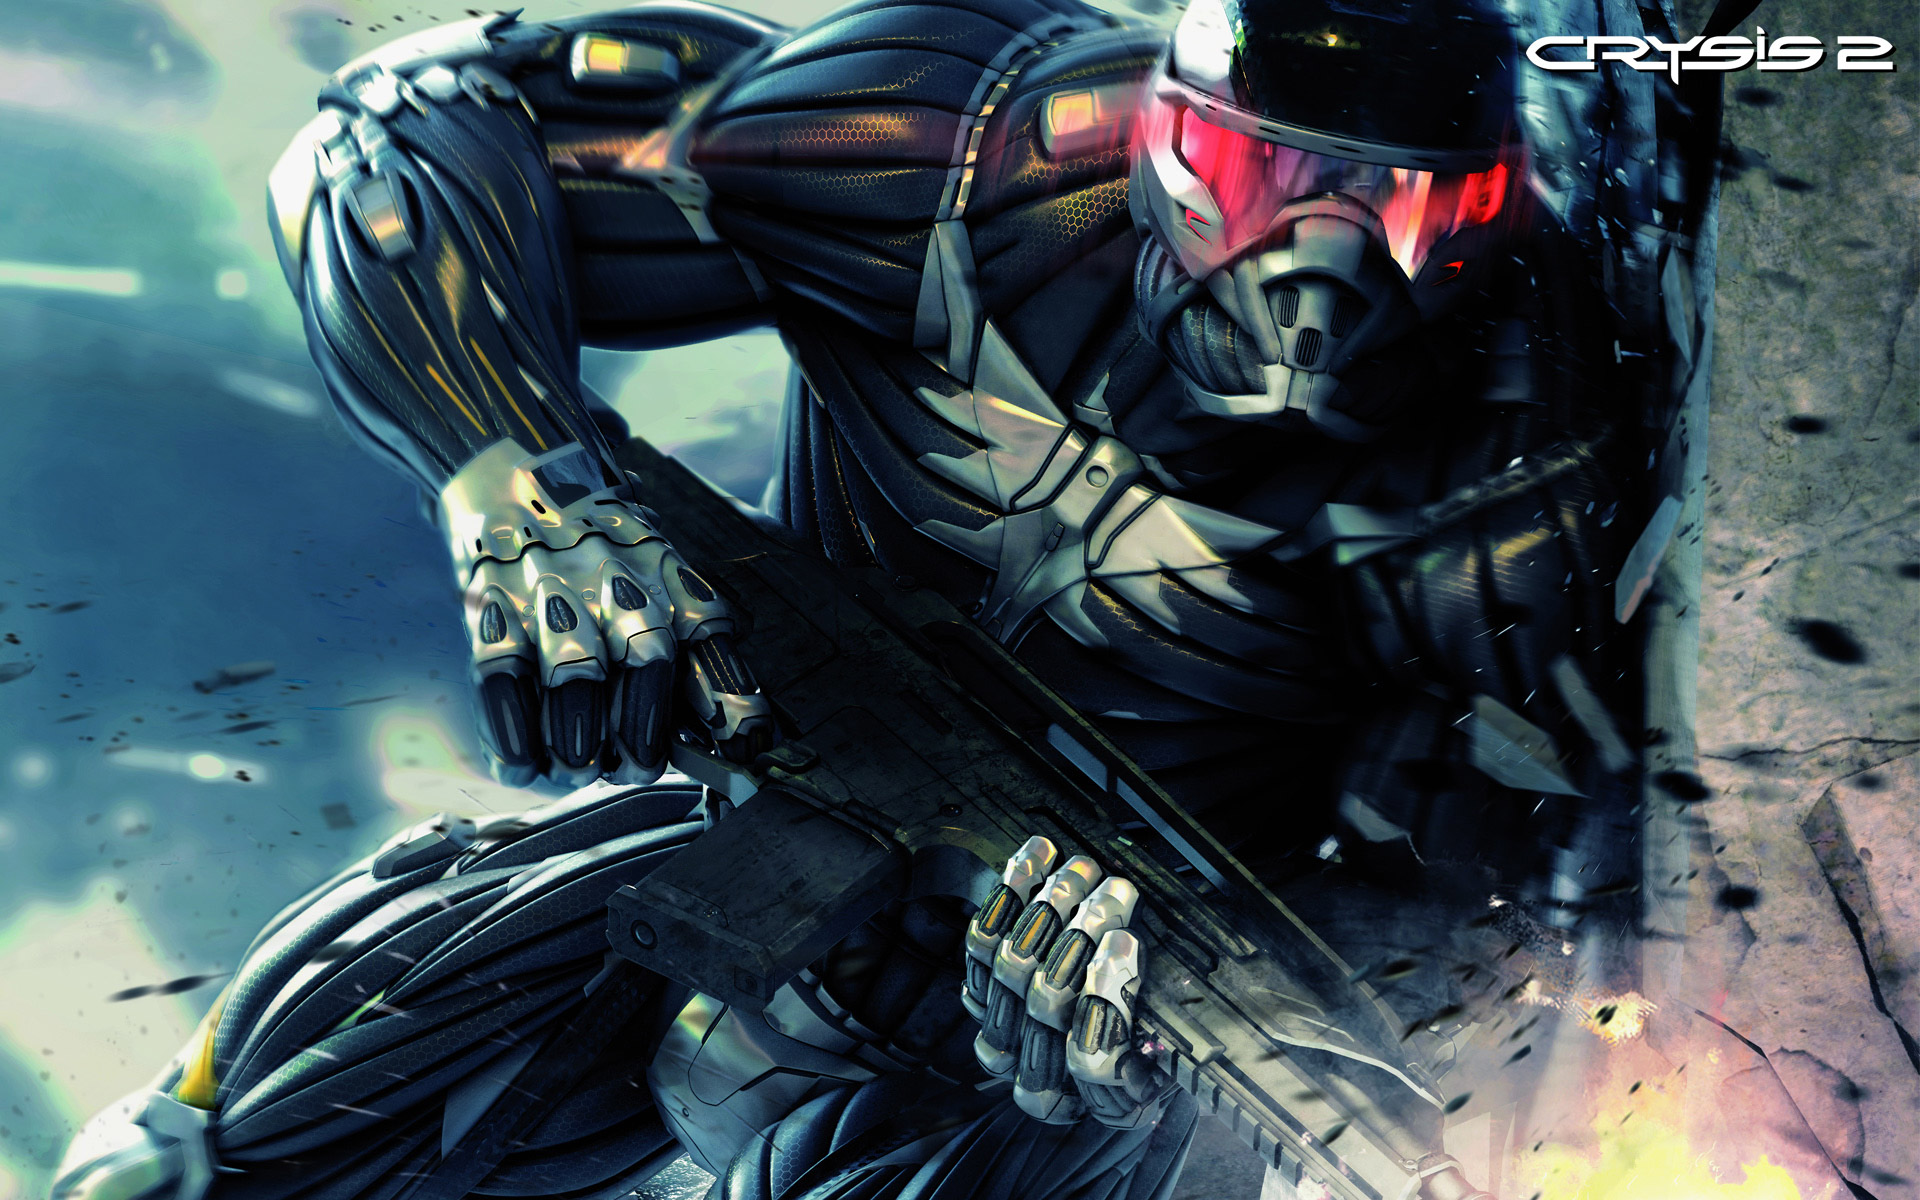 Crysis 2 Game 2010 703.55 Kb